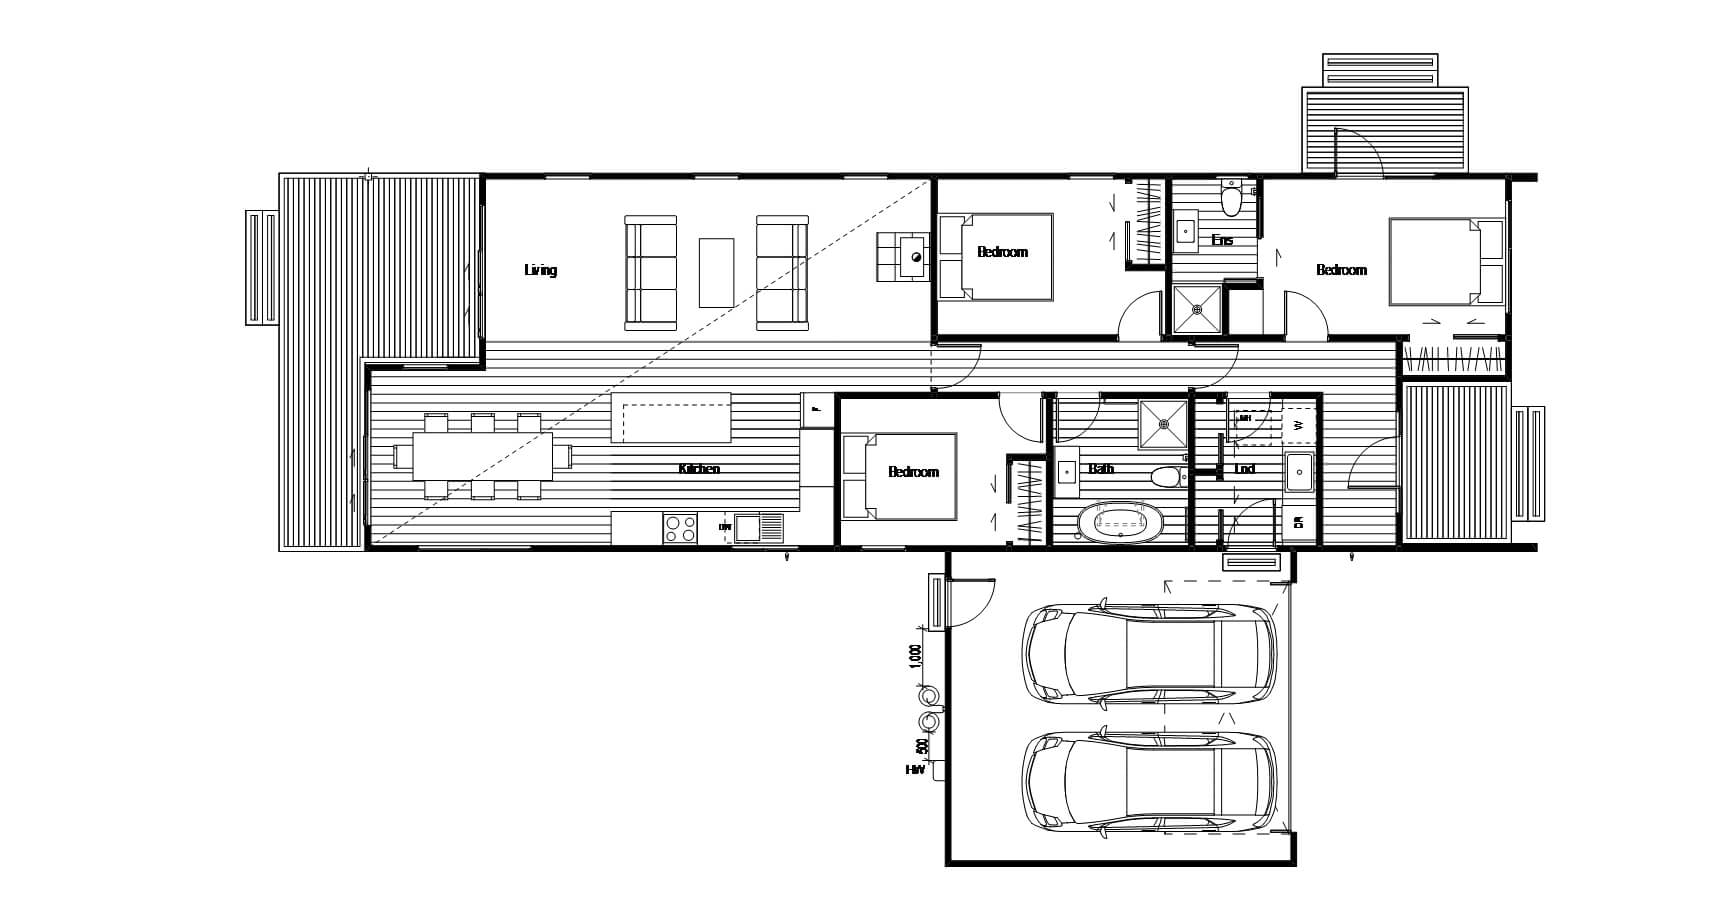 House designs for a second income or rental